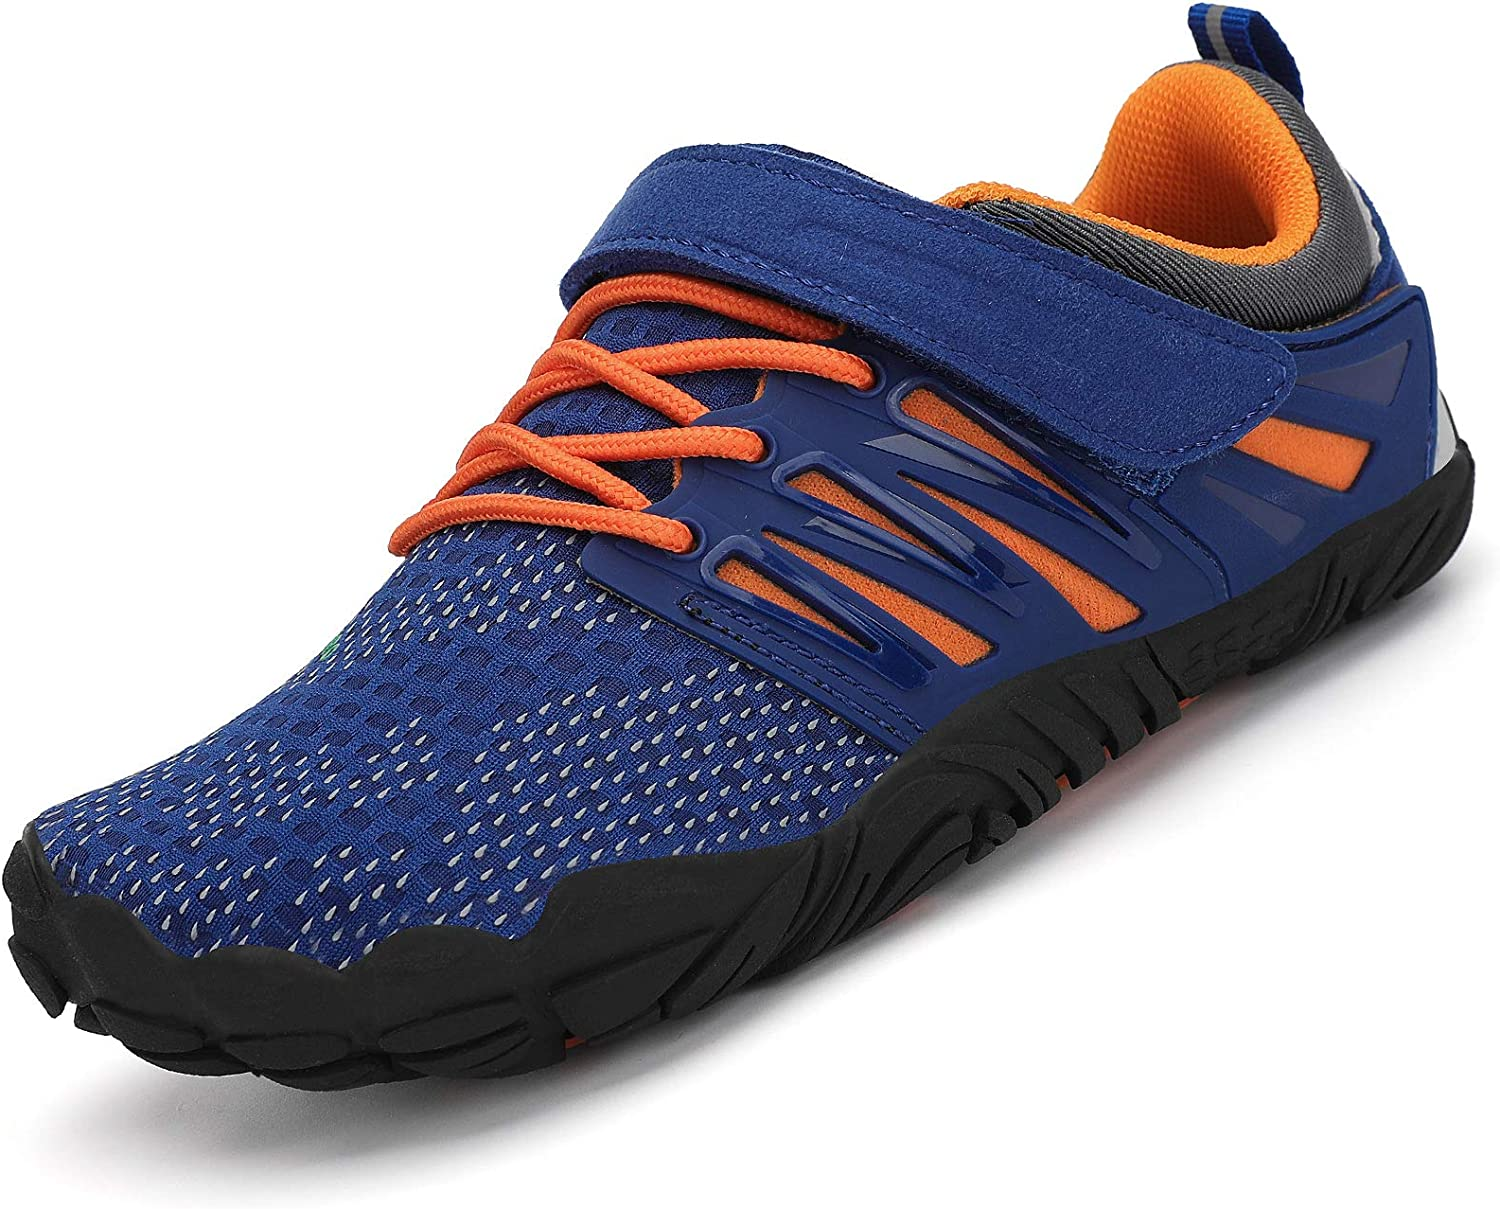 Large special price SAGUARO Kids Water Shoes Max 75% OFF Boys Girls Quick Aqua Dry Athletic Snea